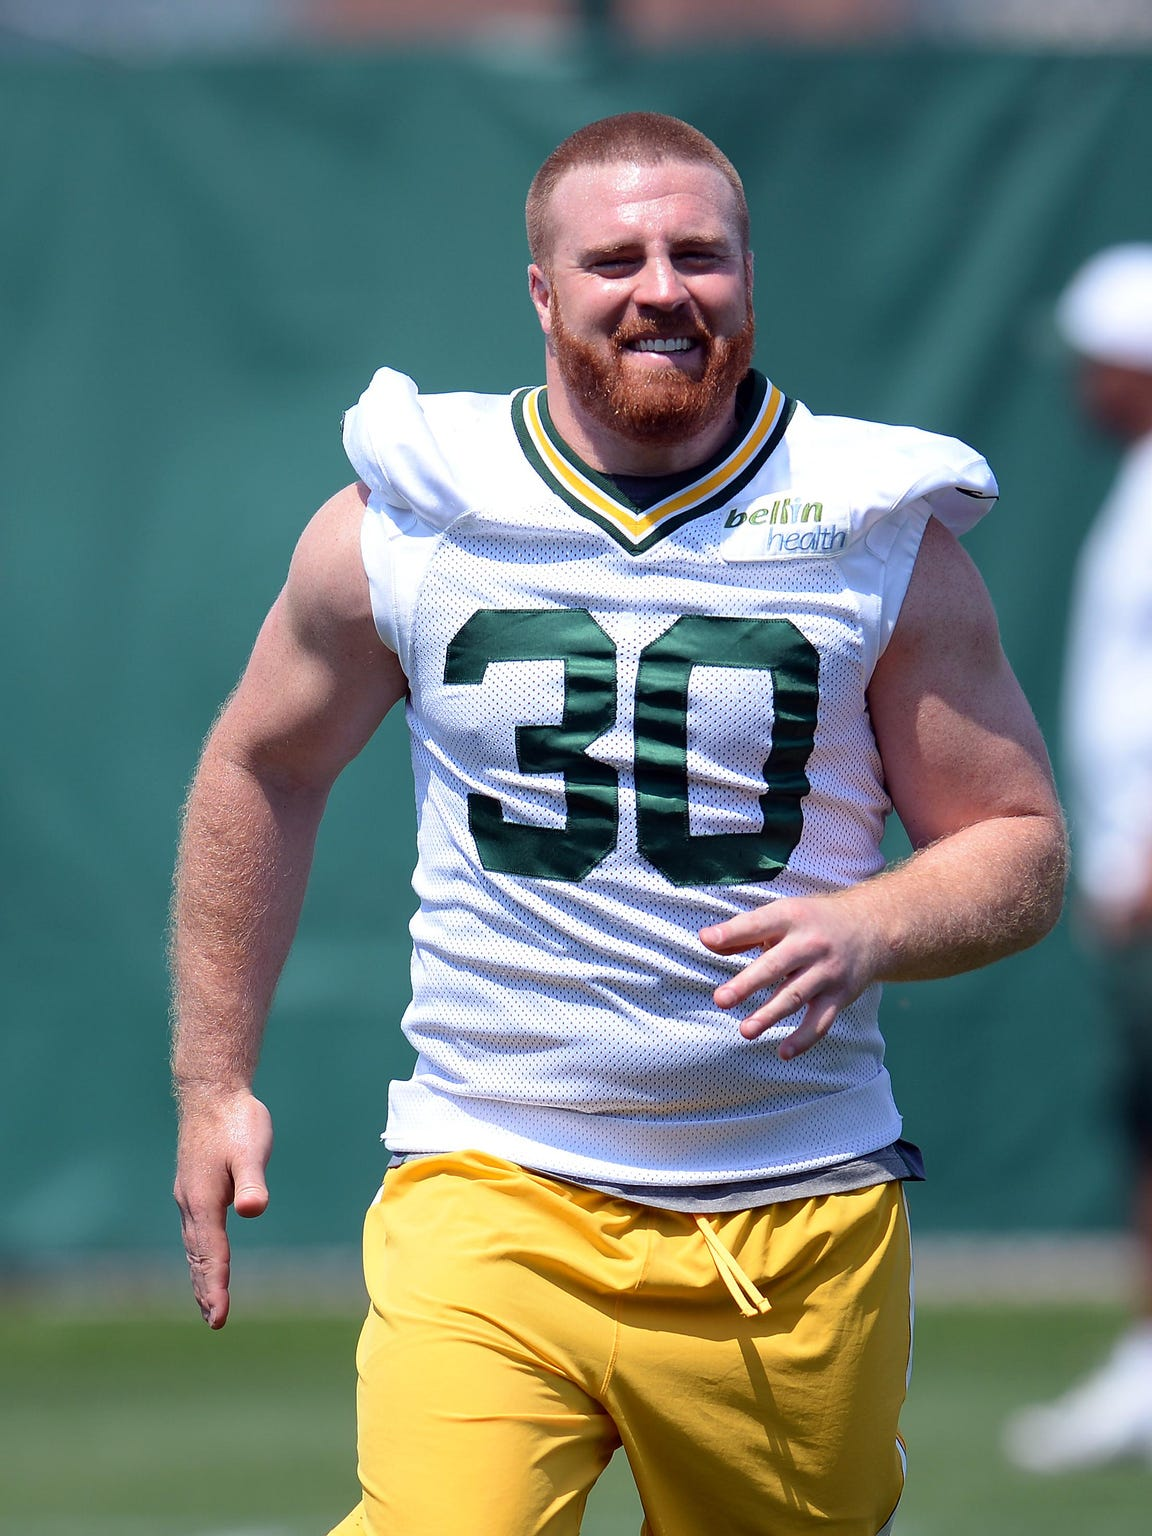 Green Bay Packers fullback John Kuhn smiles during